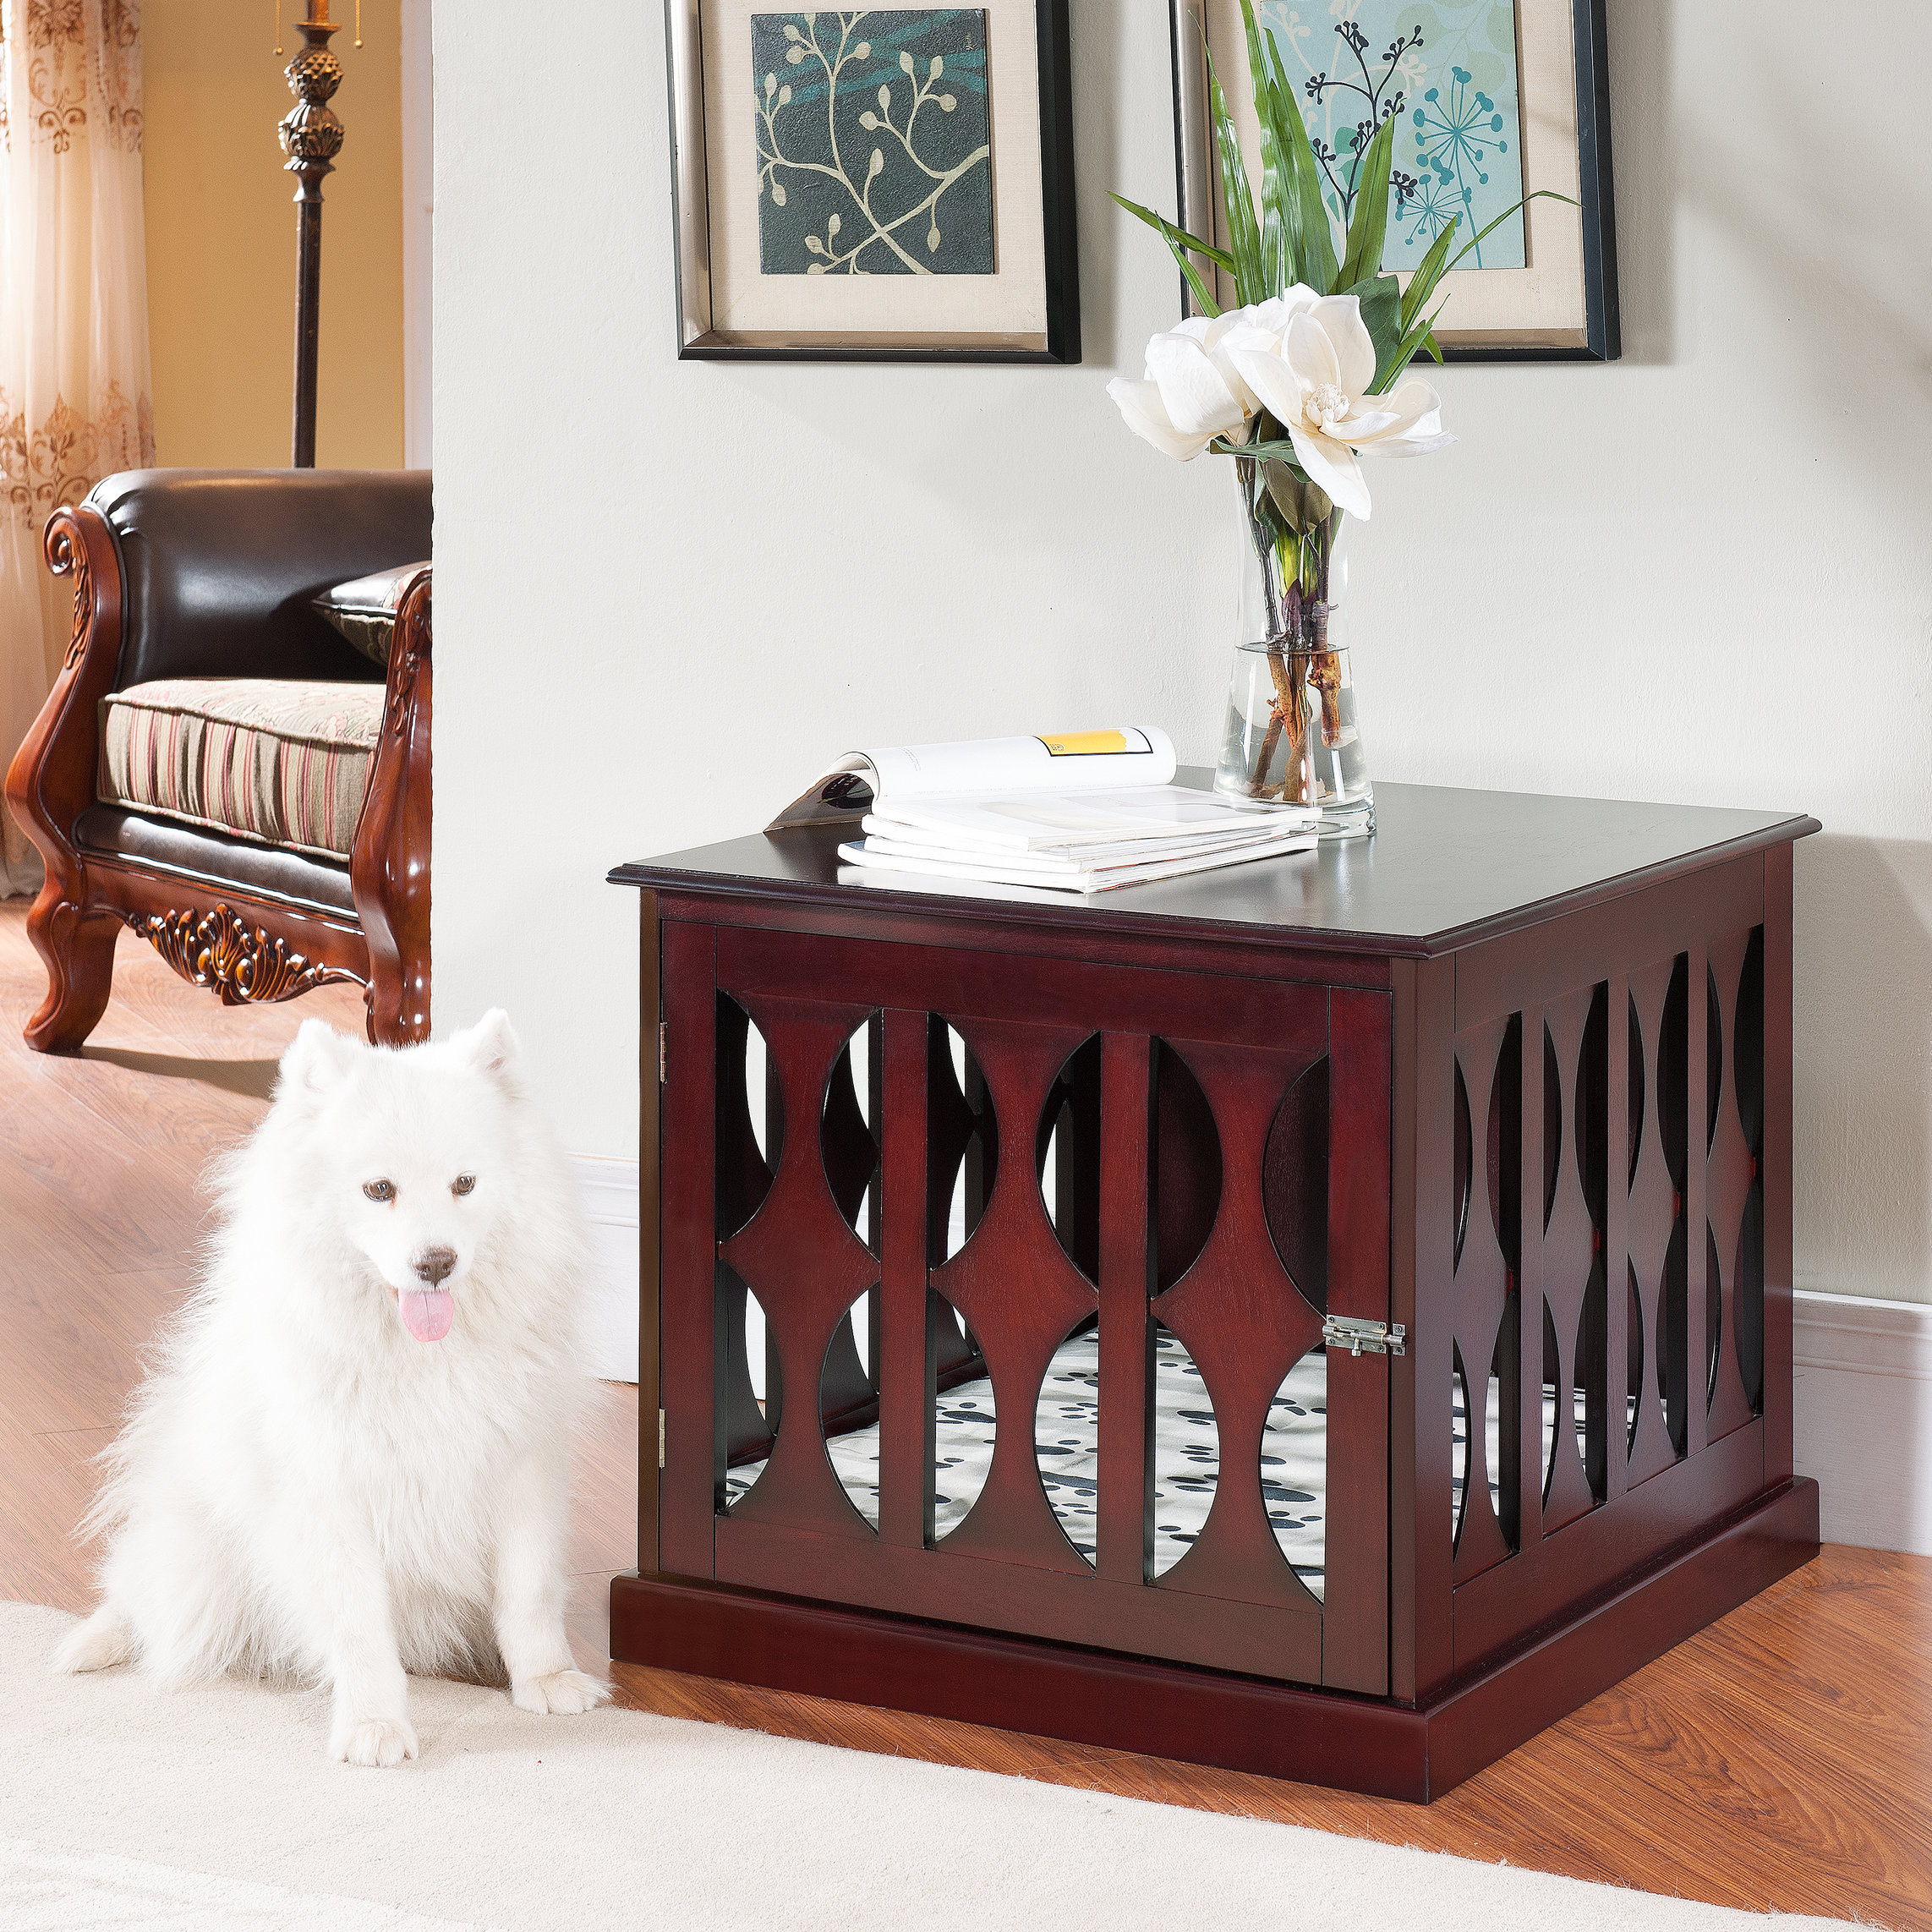 the terrific fun ecoflex pet crate end table large mira road archie oscar claudia reviews log side activity tray with raised edge kohls department gold accent vintage credenza